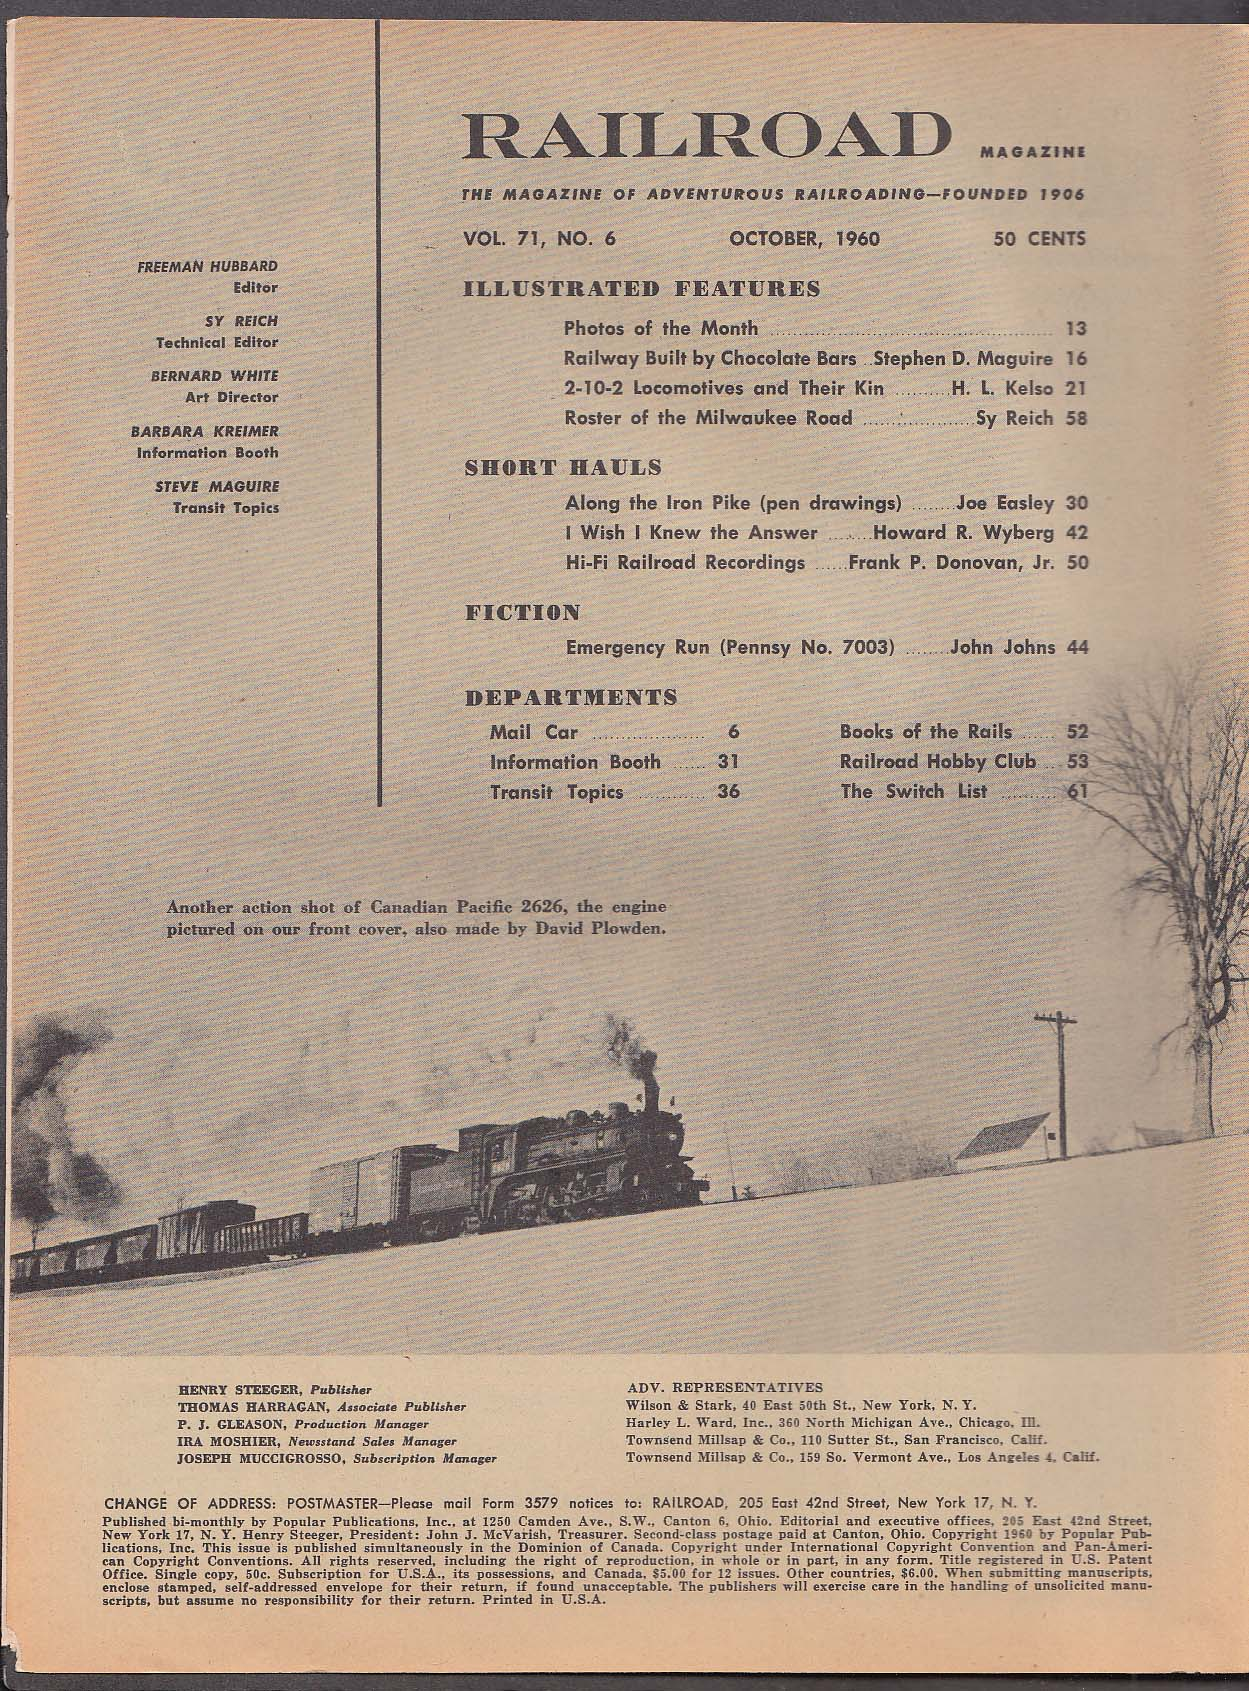 RAILROAD Stephen D Maguire 2-10-2 Locomotives Pennsy 7003 Hershey Cuban 10 1960